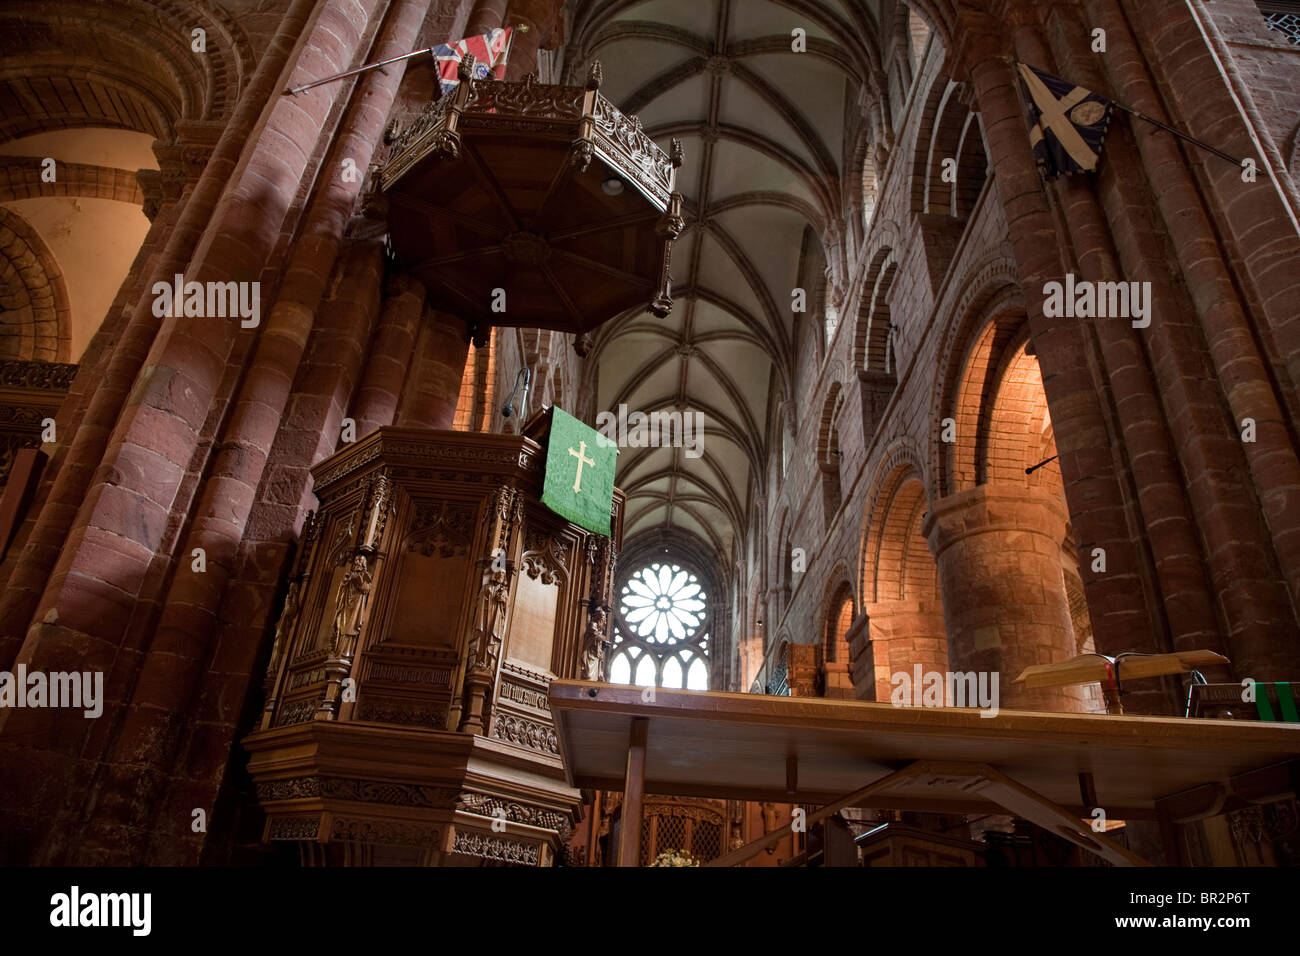 Pulpit in Kirkwall Cathedral in Orkney Islands, Scotland - Stock Image